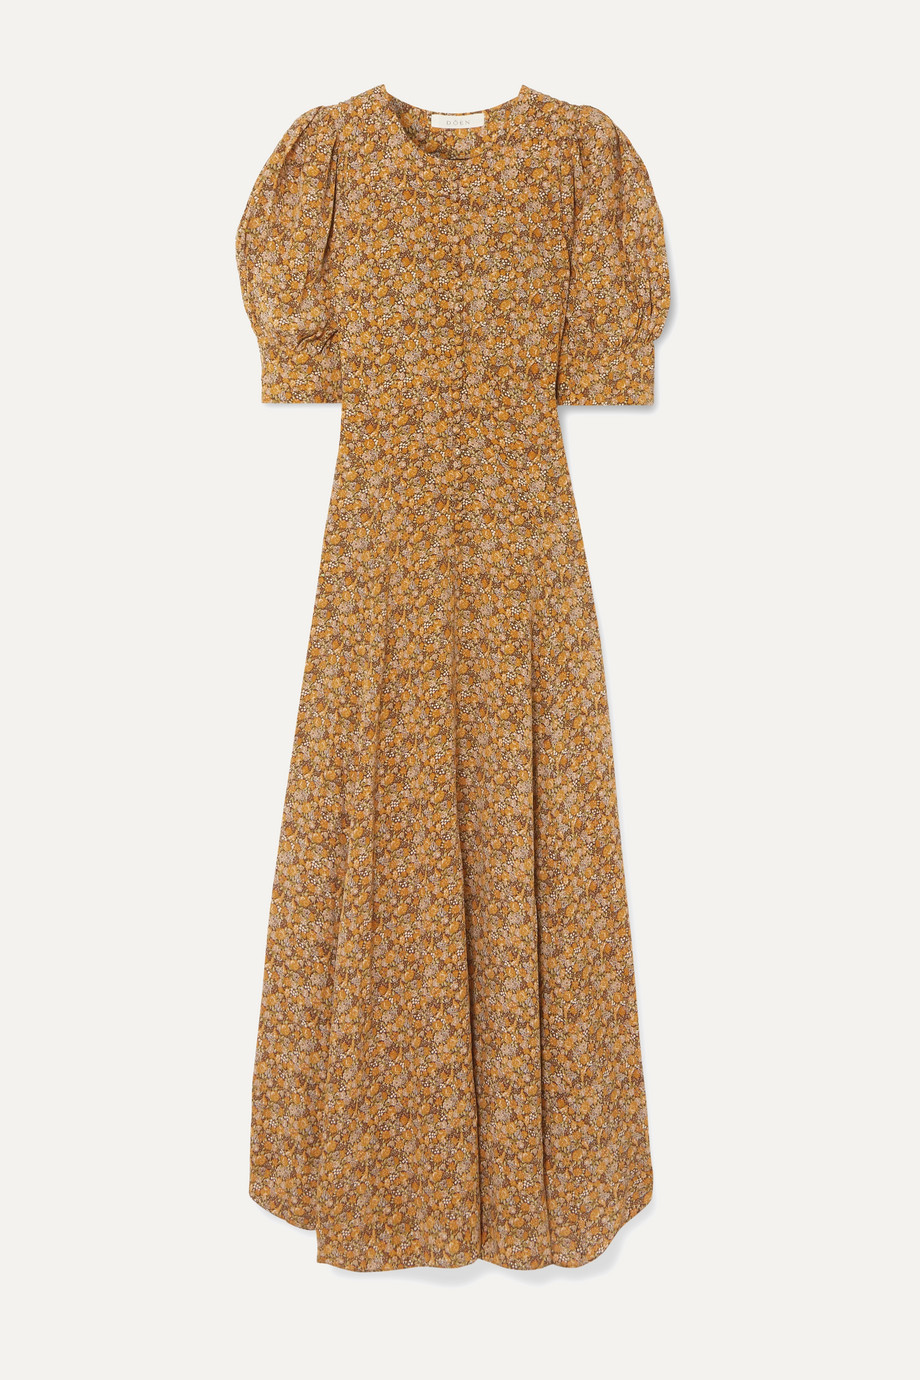 DÔEN Laurel asymmetric floral-print silk crepe de chine maxi dress